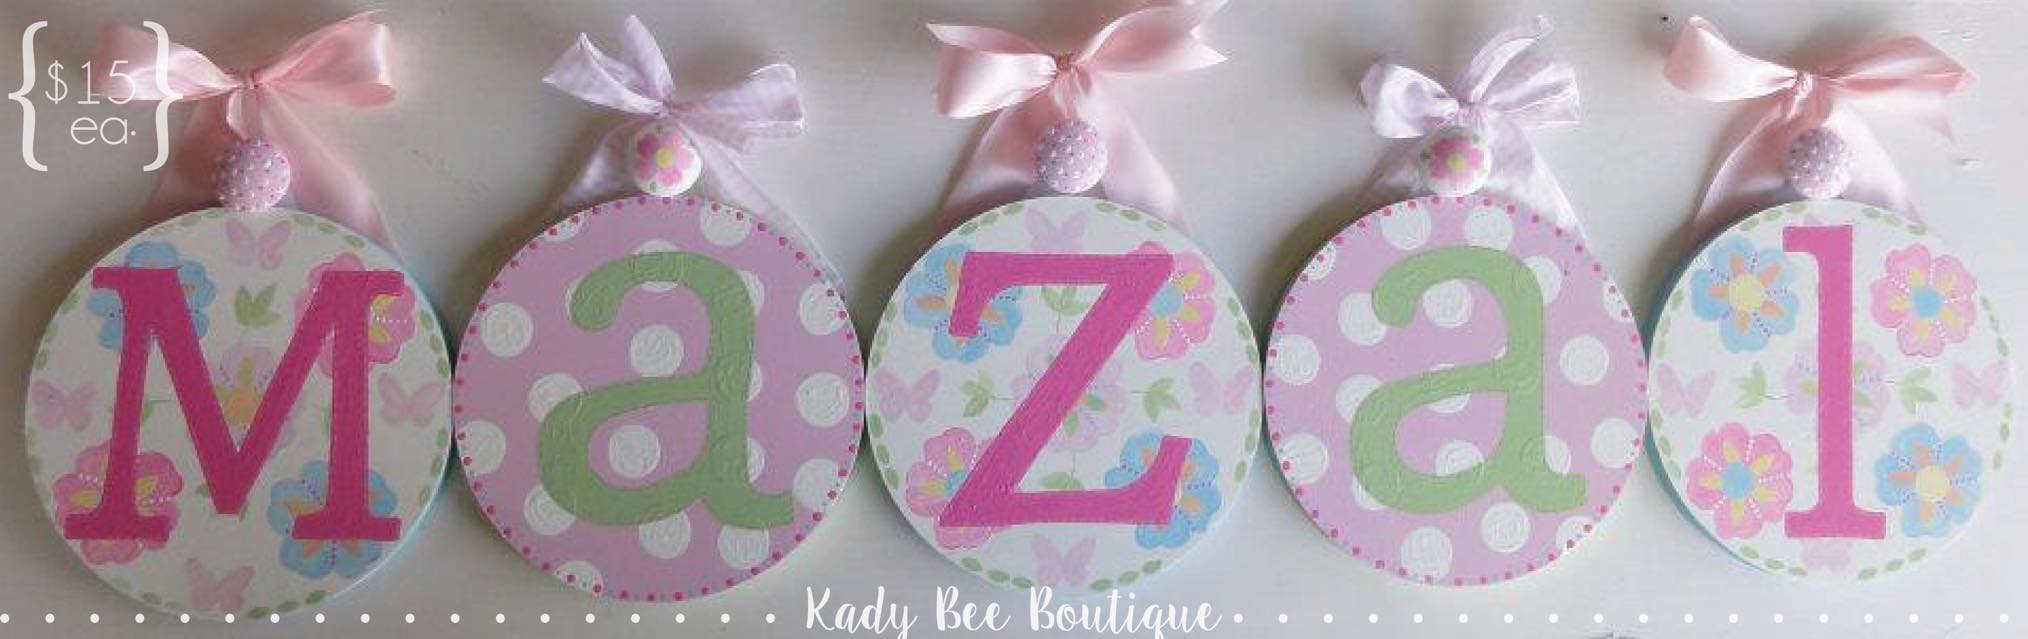 Kady Bee Boutique